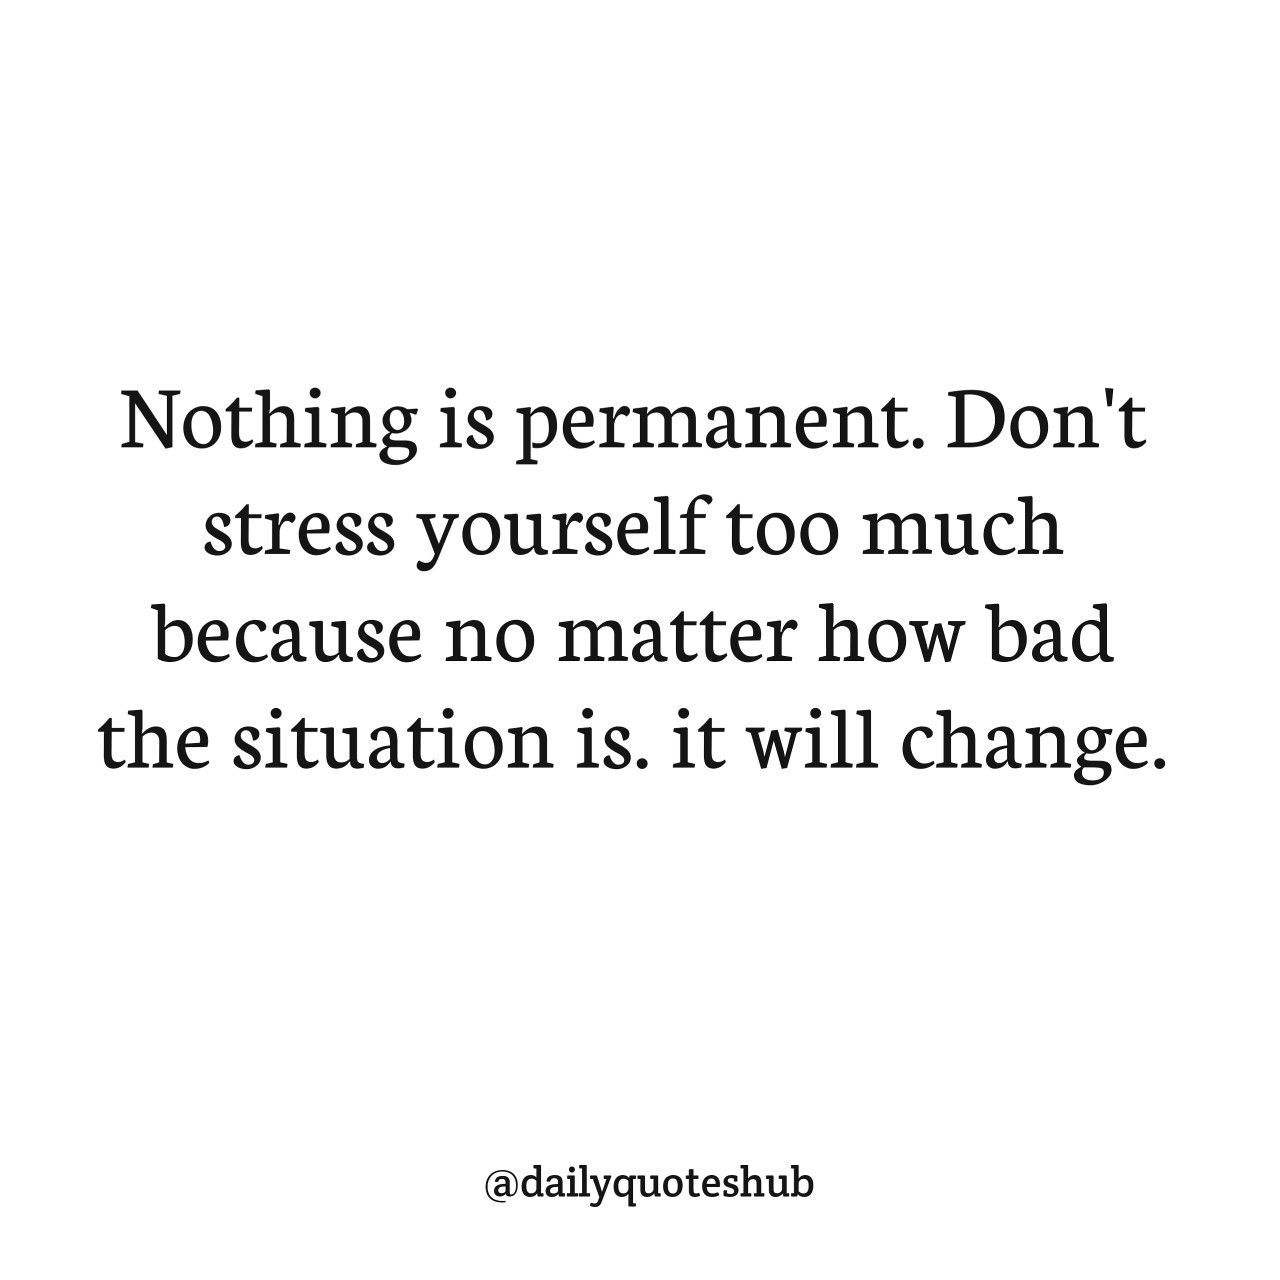 For More Amazing Quotes Like This Follow Us On Instagram Dailyquoteshub Quotes Birthday Quotes Inspirational True Quotes Amazing Quotes